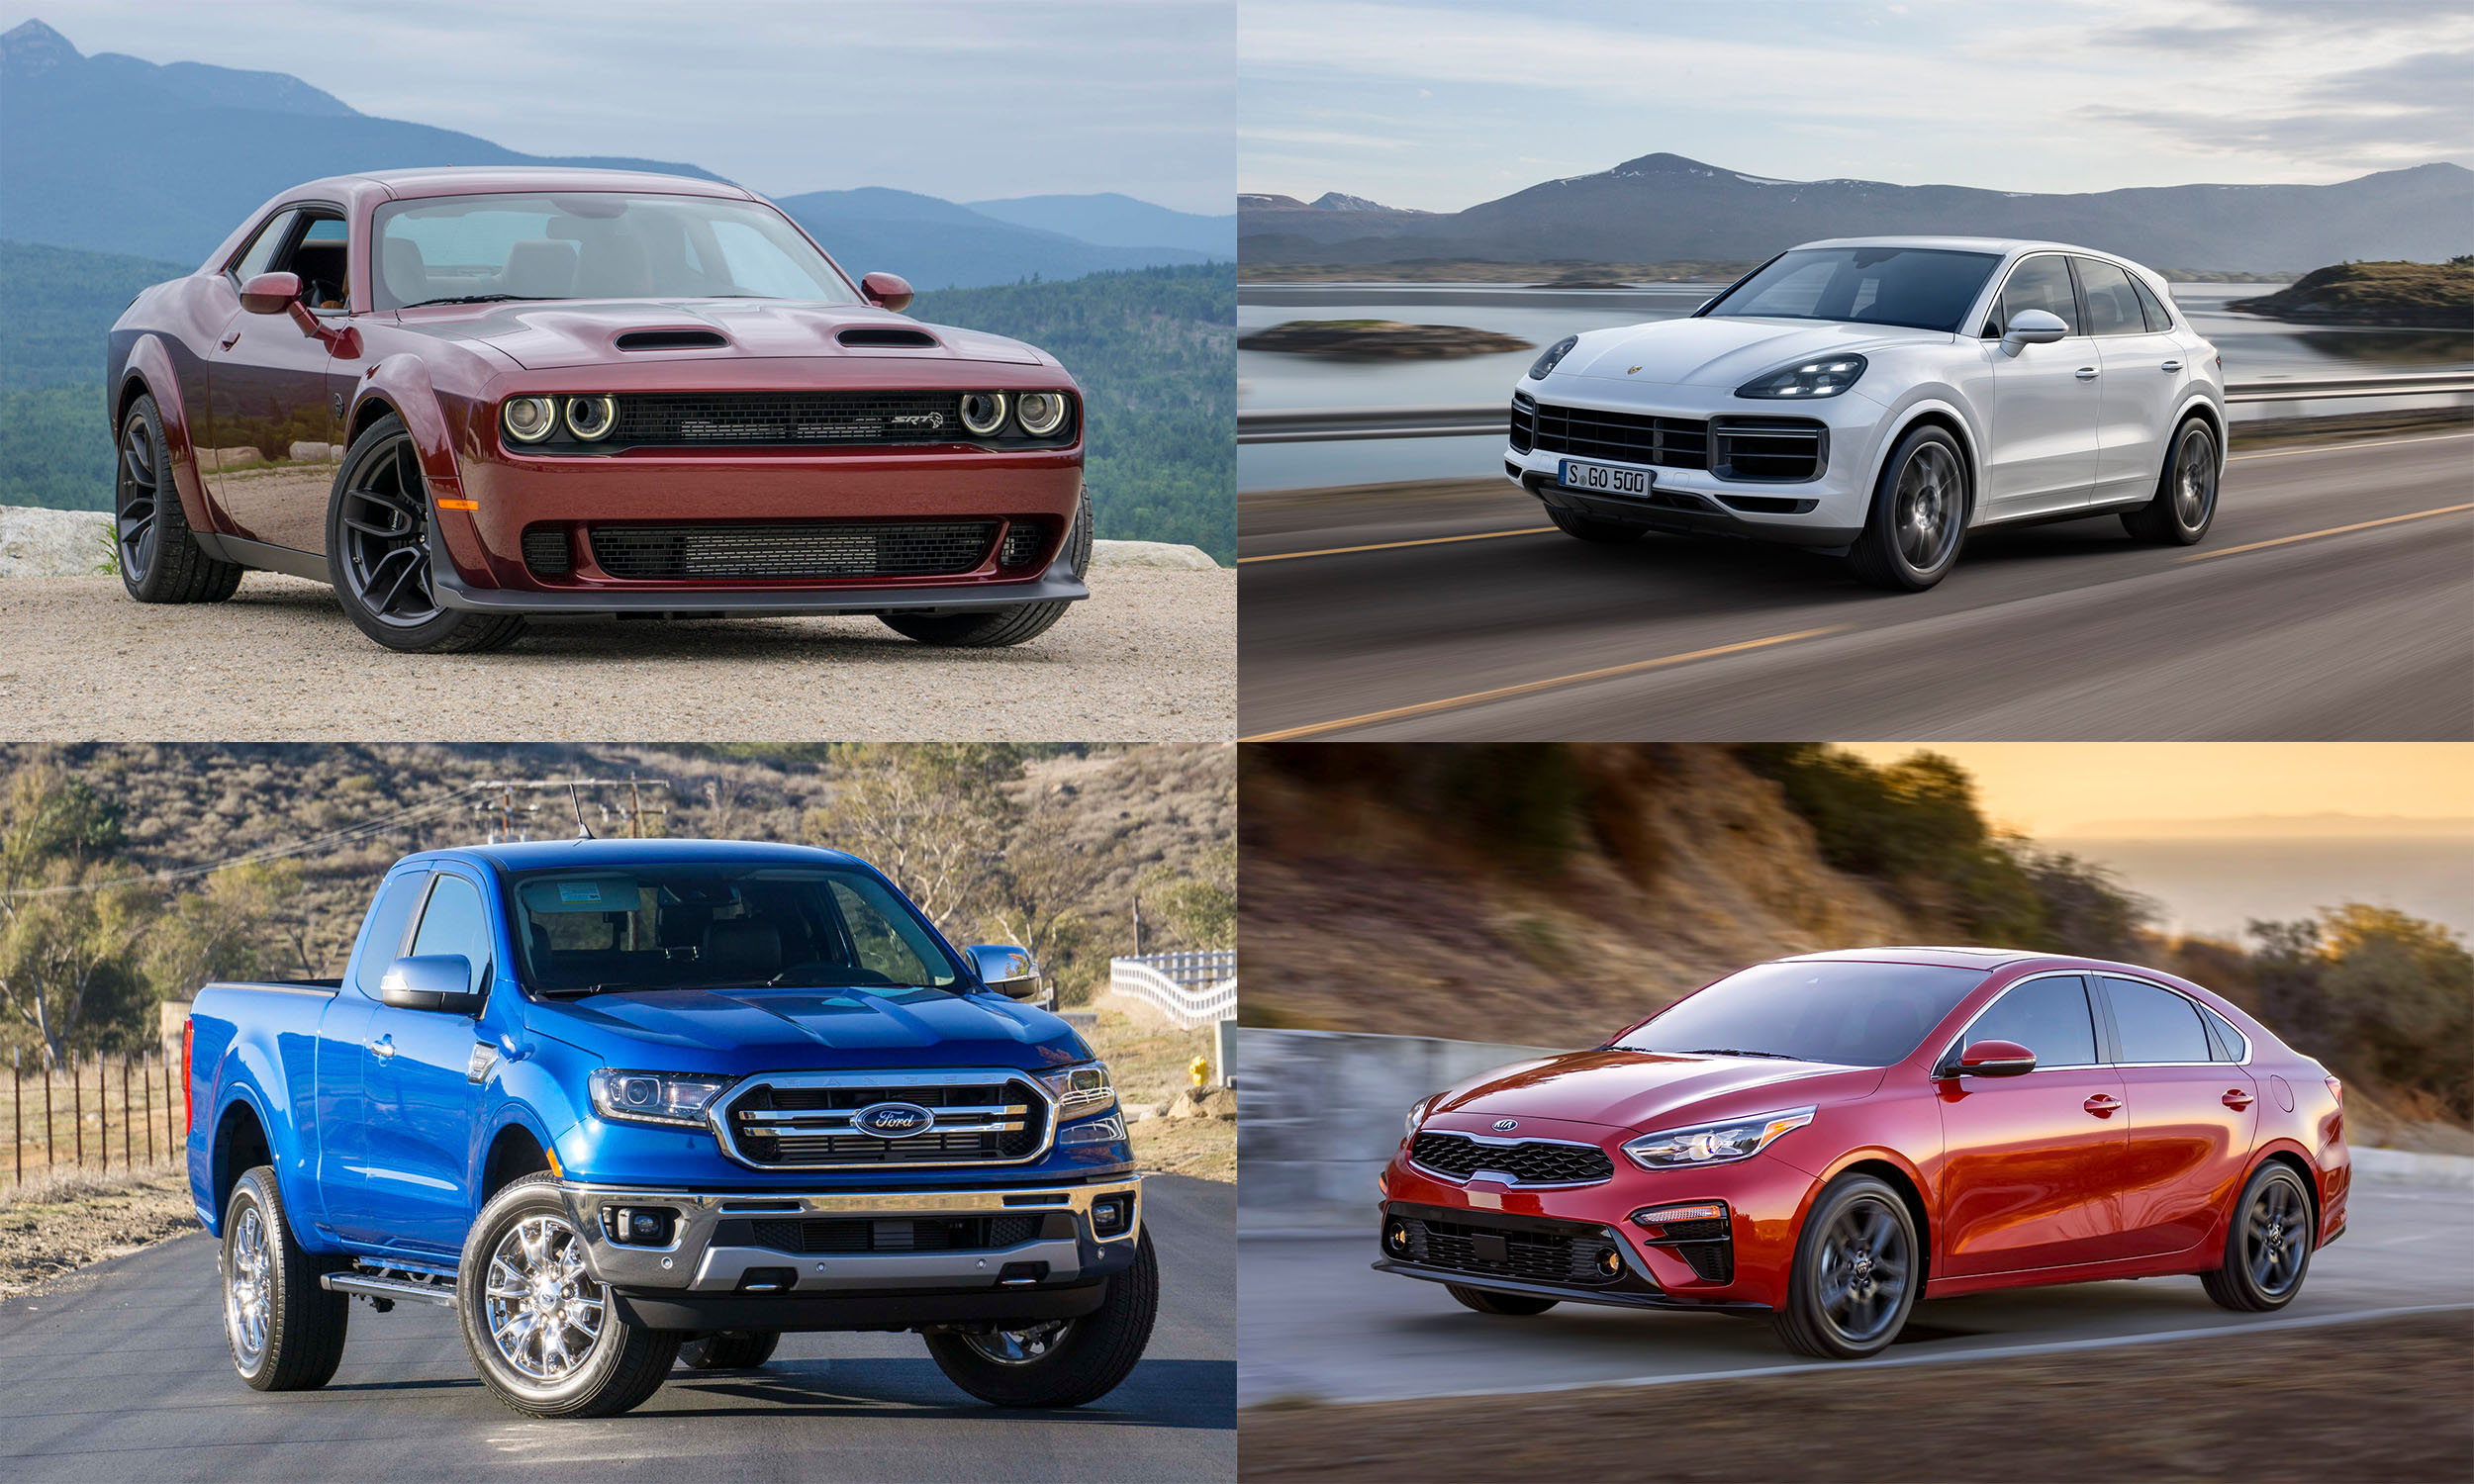 Most Loved New Cars of 2019nbsp